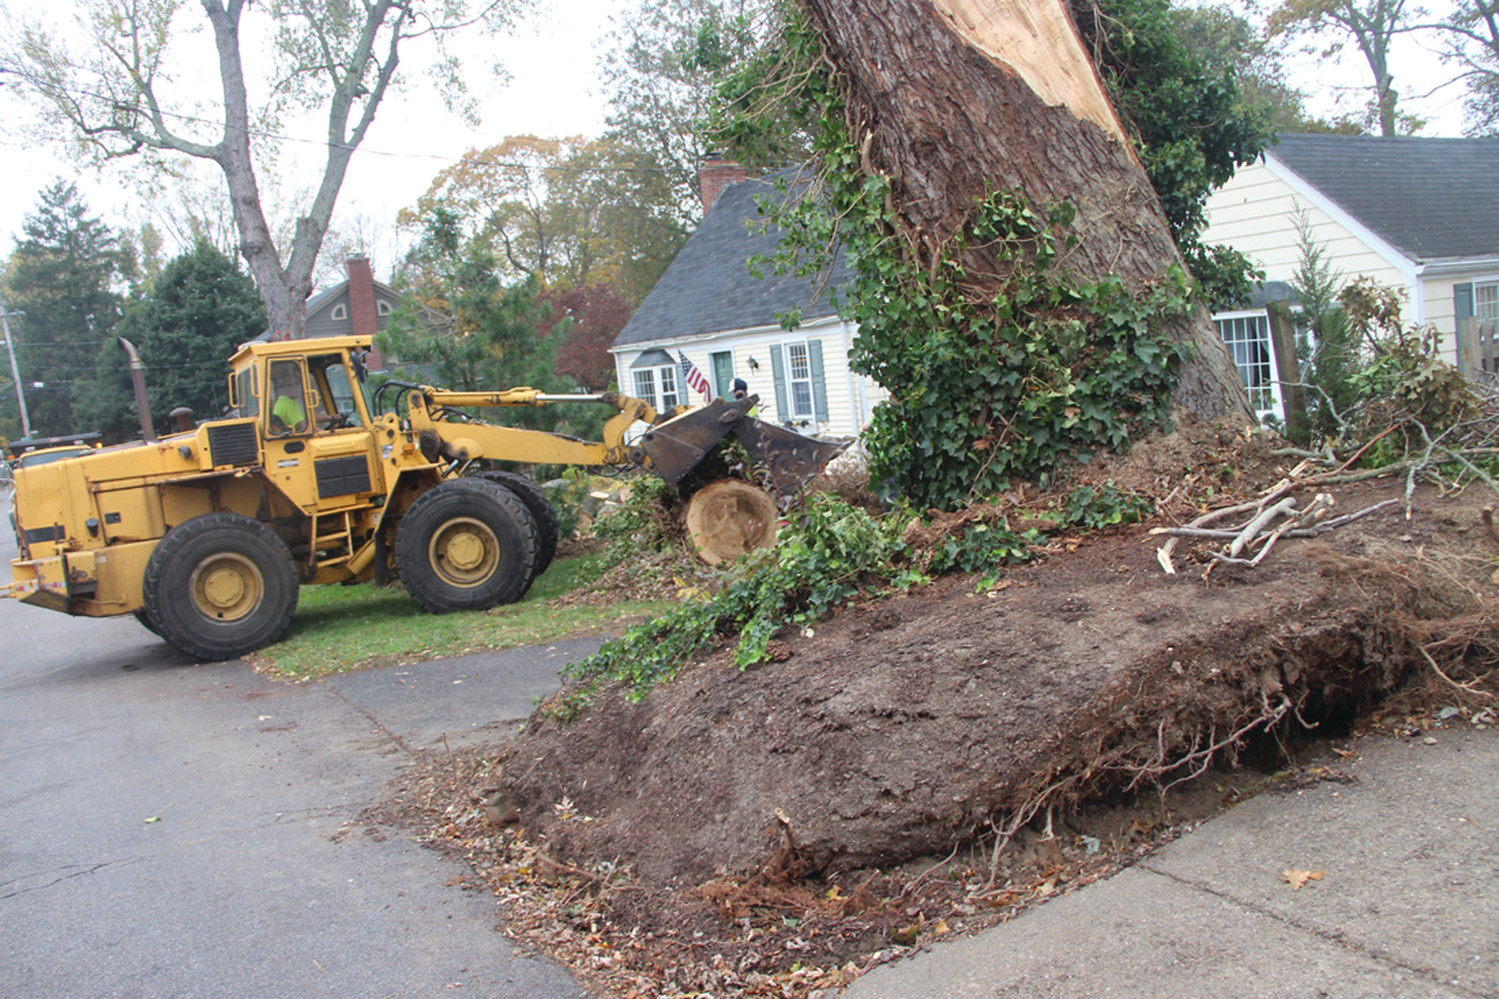 BLOWN OVER: The storm's winds that were clocked at a high of 81 miles an hour at Conimicut Point uprooted this tree on Pleasant View. By Monday, city crews had most of the tree cut up with the exception of several large sections and the main trunk that stood up after being relieved of its branches.